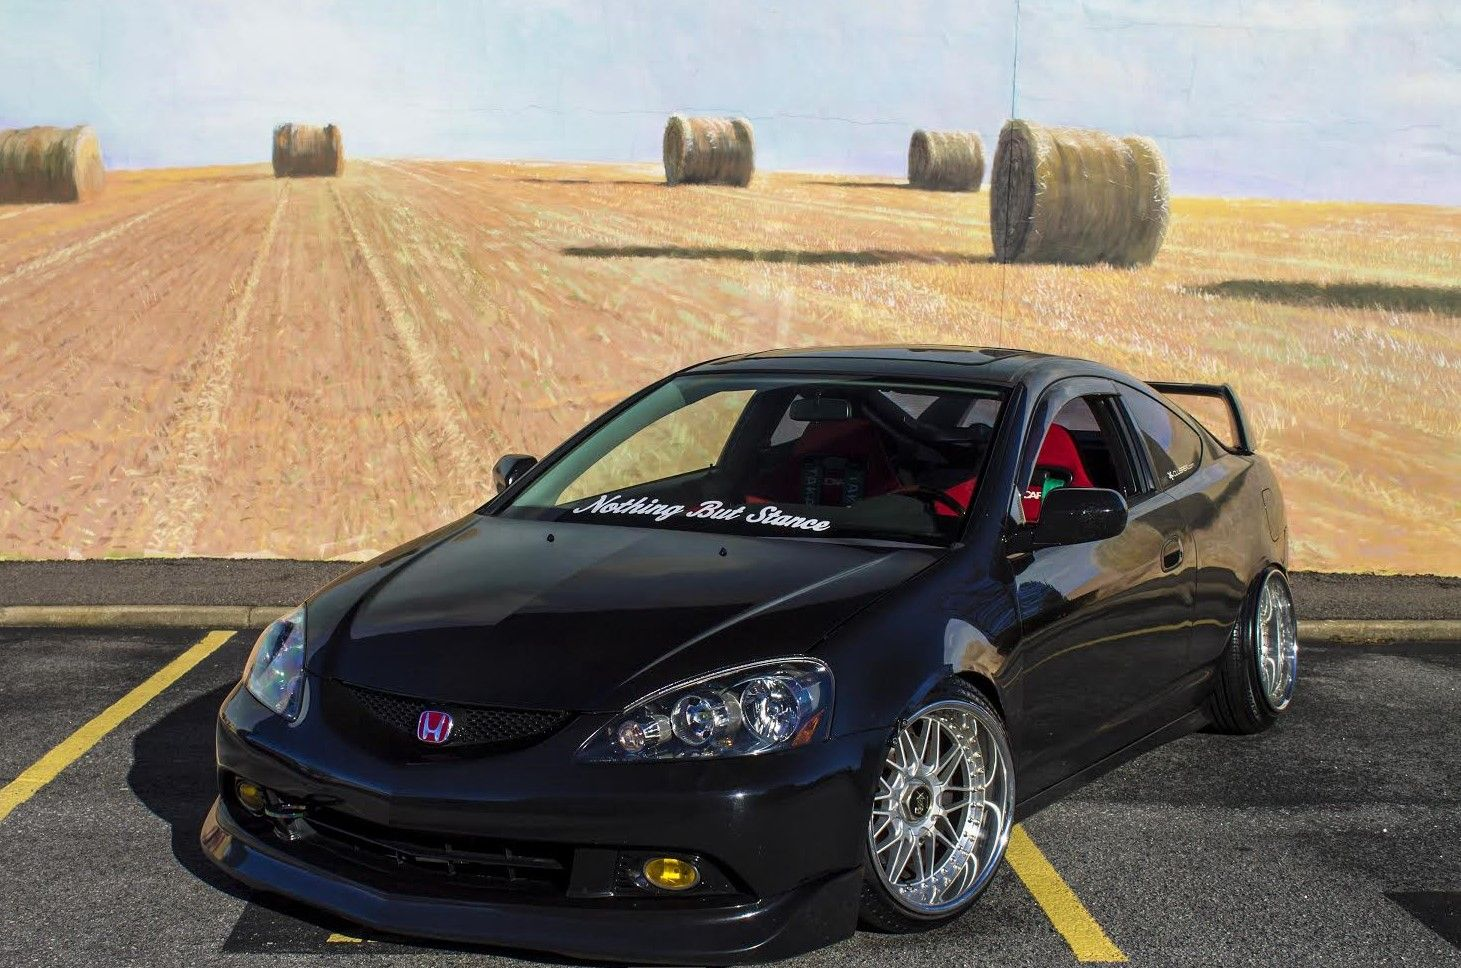 acura-rsx-dropped